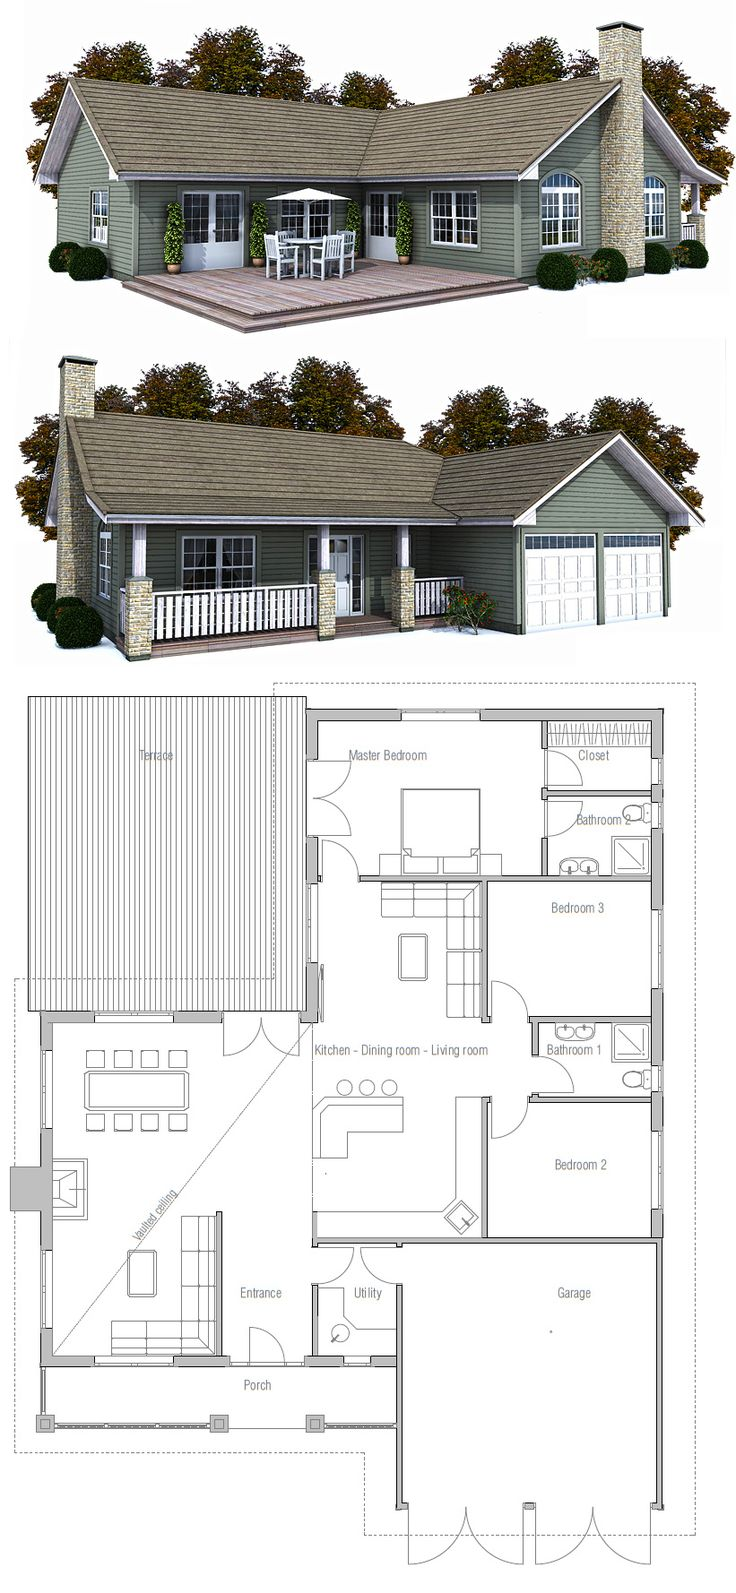 Phenomenal 17 Best Ideas About Small House Plans On Pinterest Cabin Plans Largest Home Design Picture Inspirations Pitcheantrous